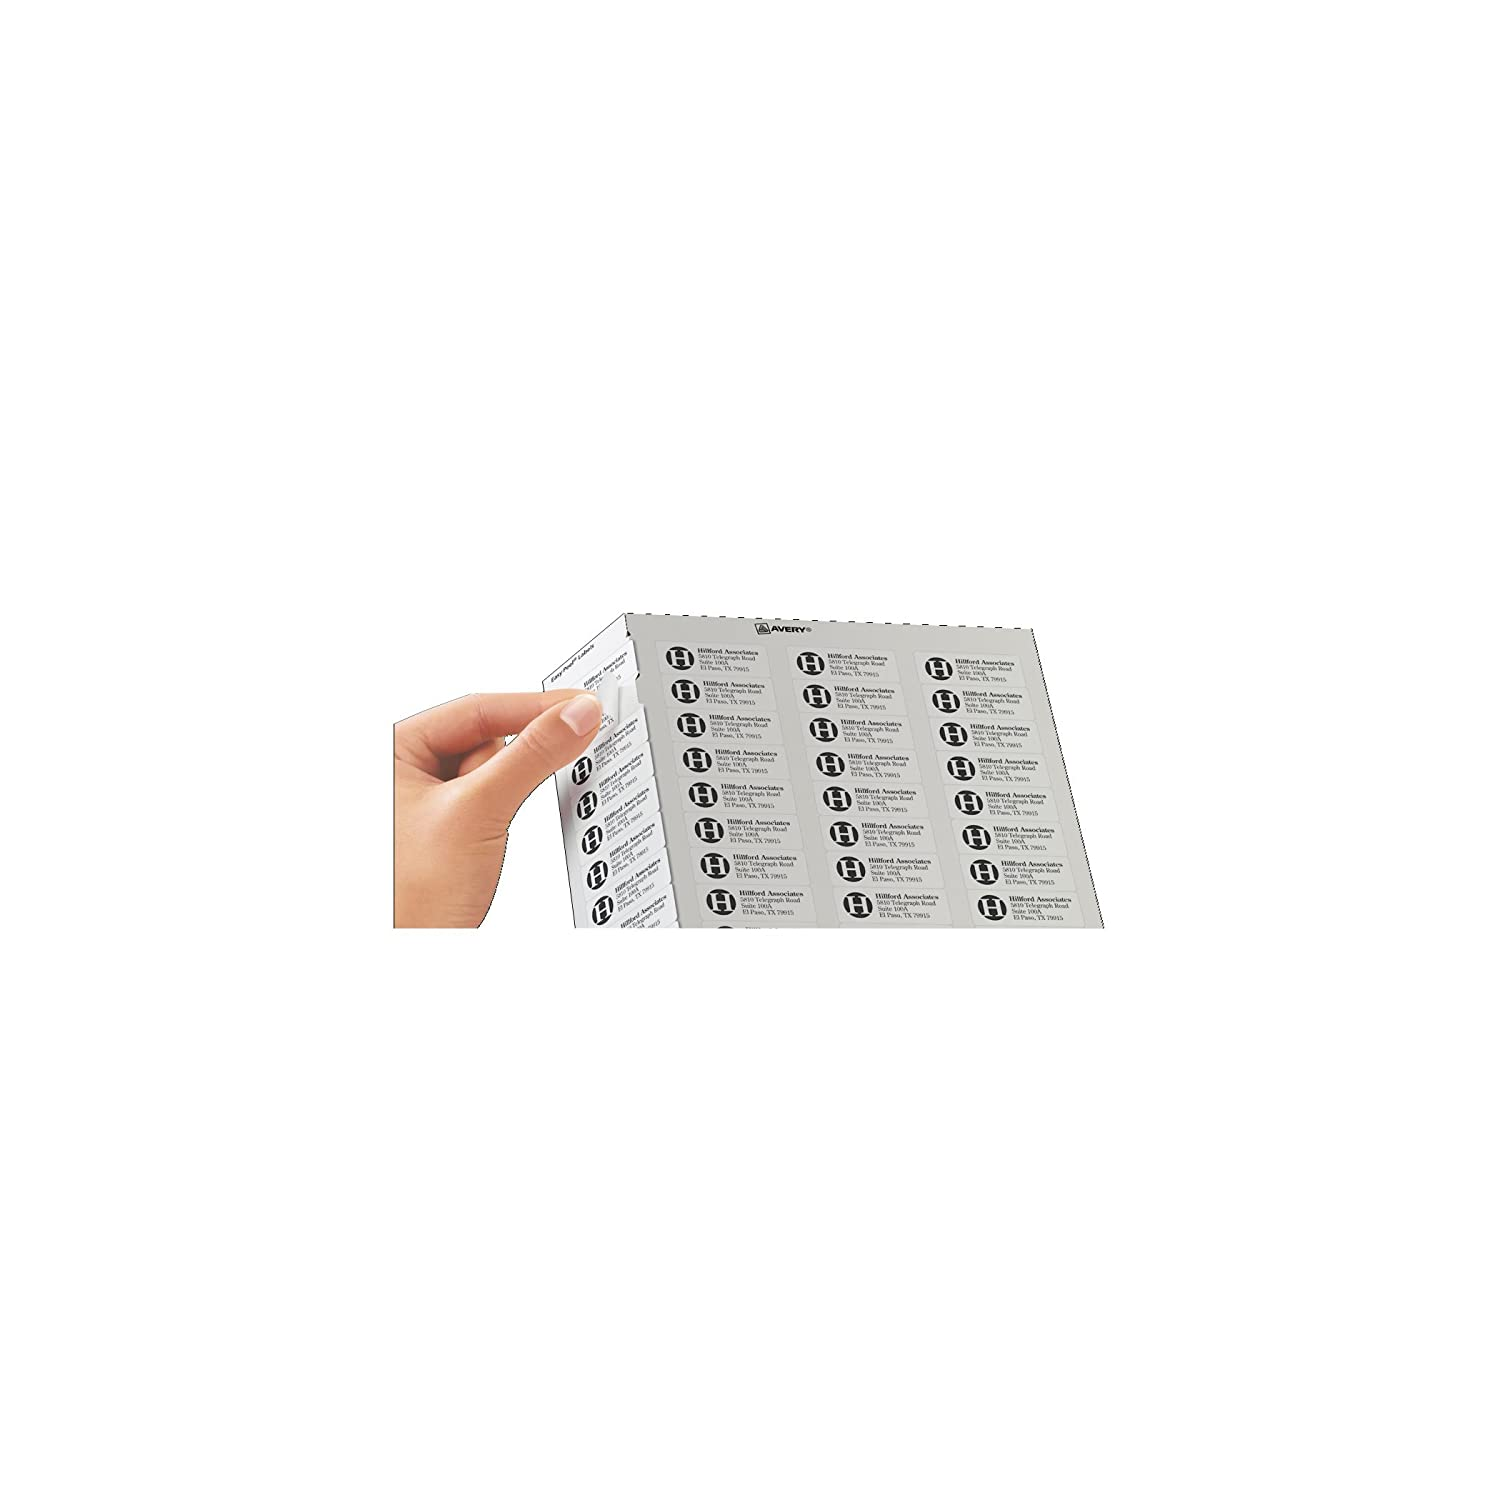 8195 template - Amazon Com Avery Easy Peel Return Address Labels For Laser Printers 2 3 X 1 3 4 Box Of 6 000 5155 Office Products